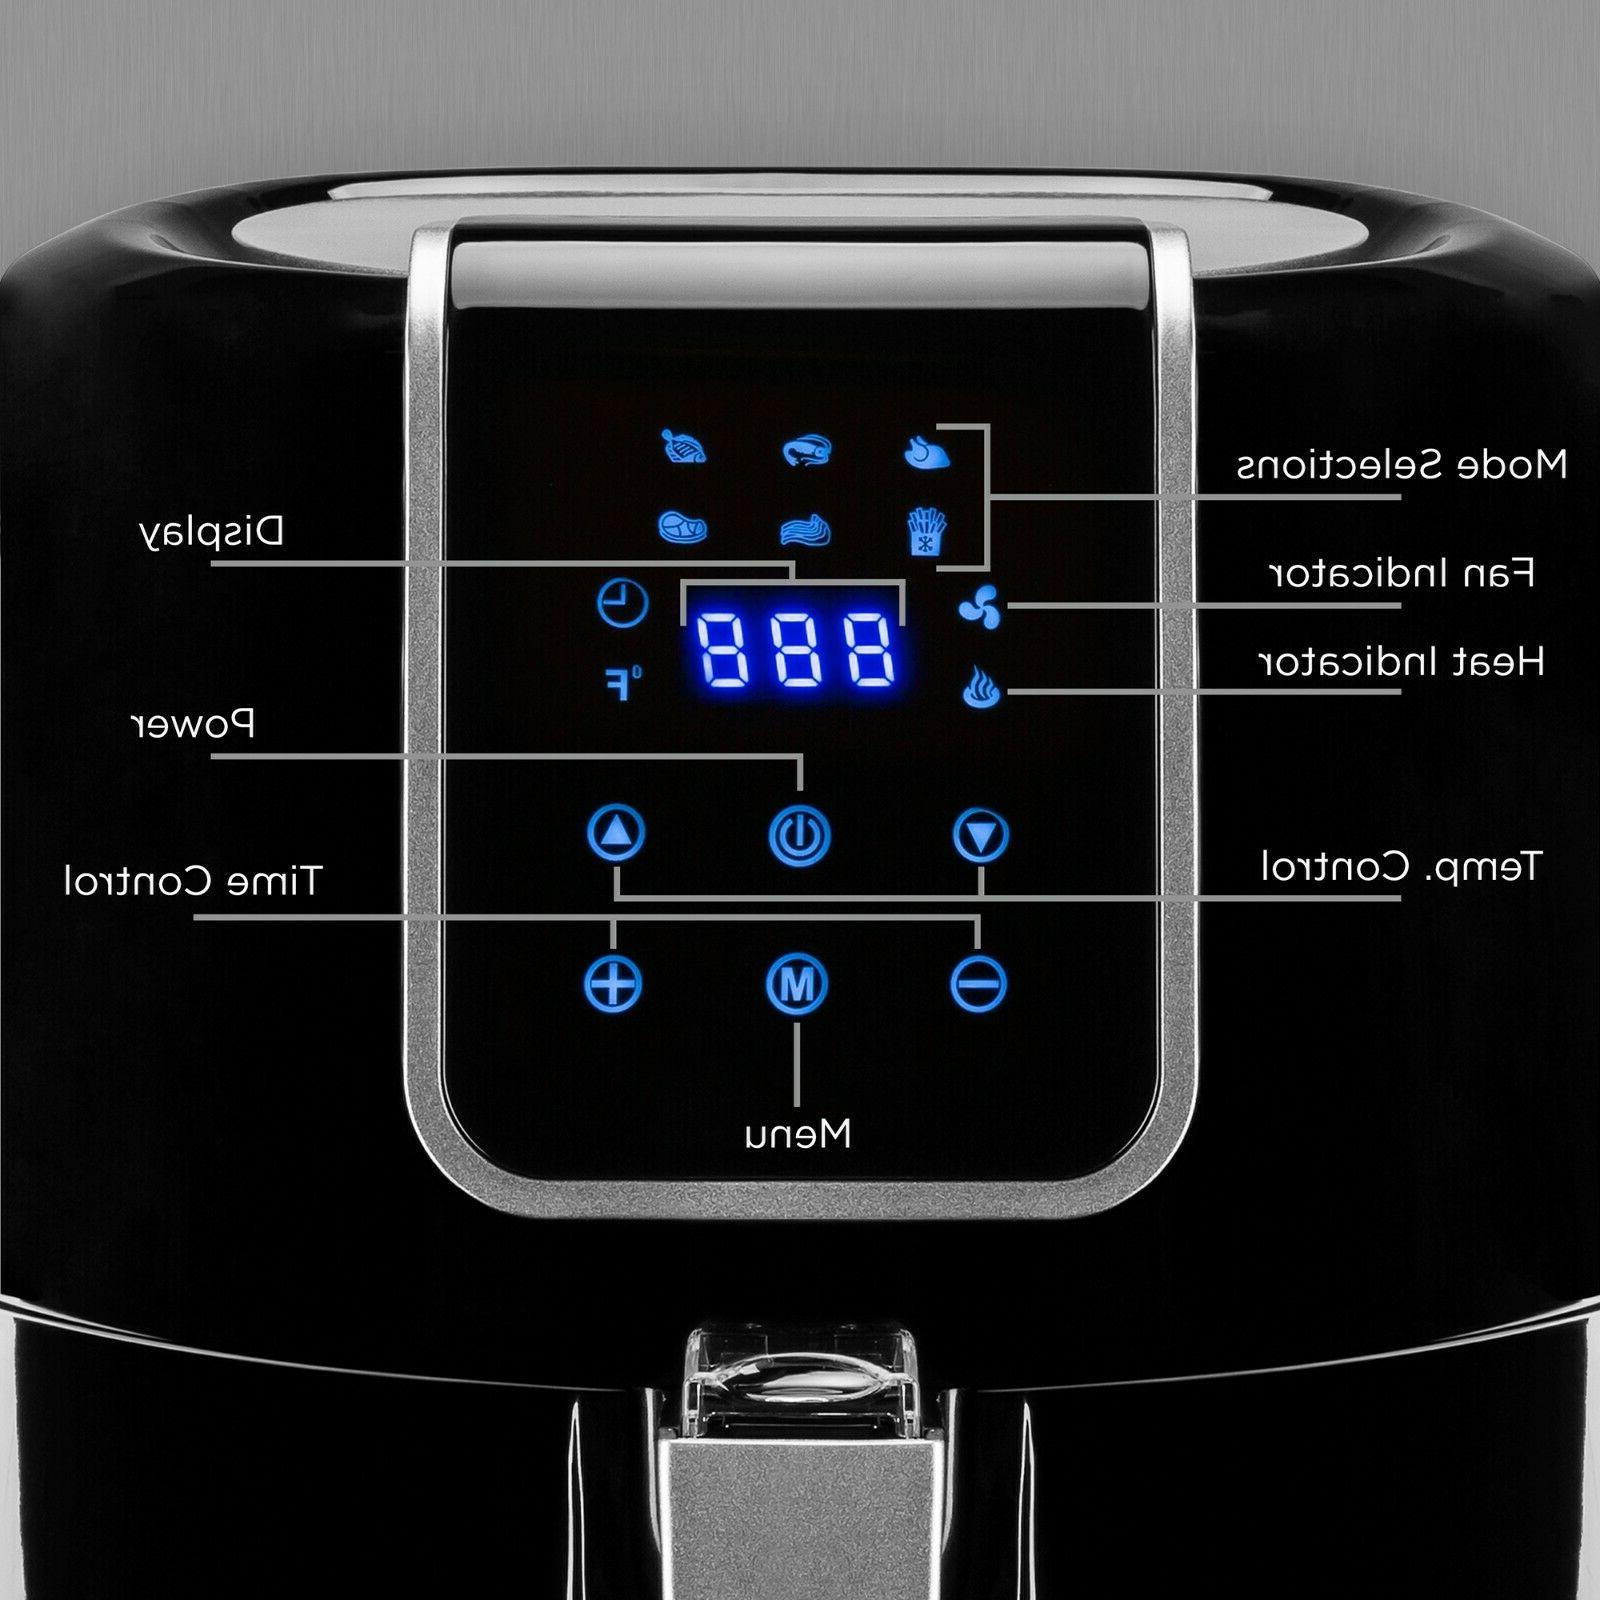 Best Choice 6-in-1 Digital Family Sized Air Fryer Kitchen